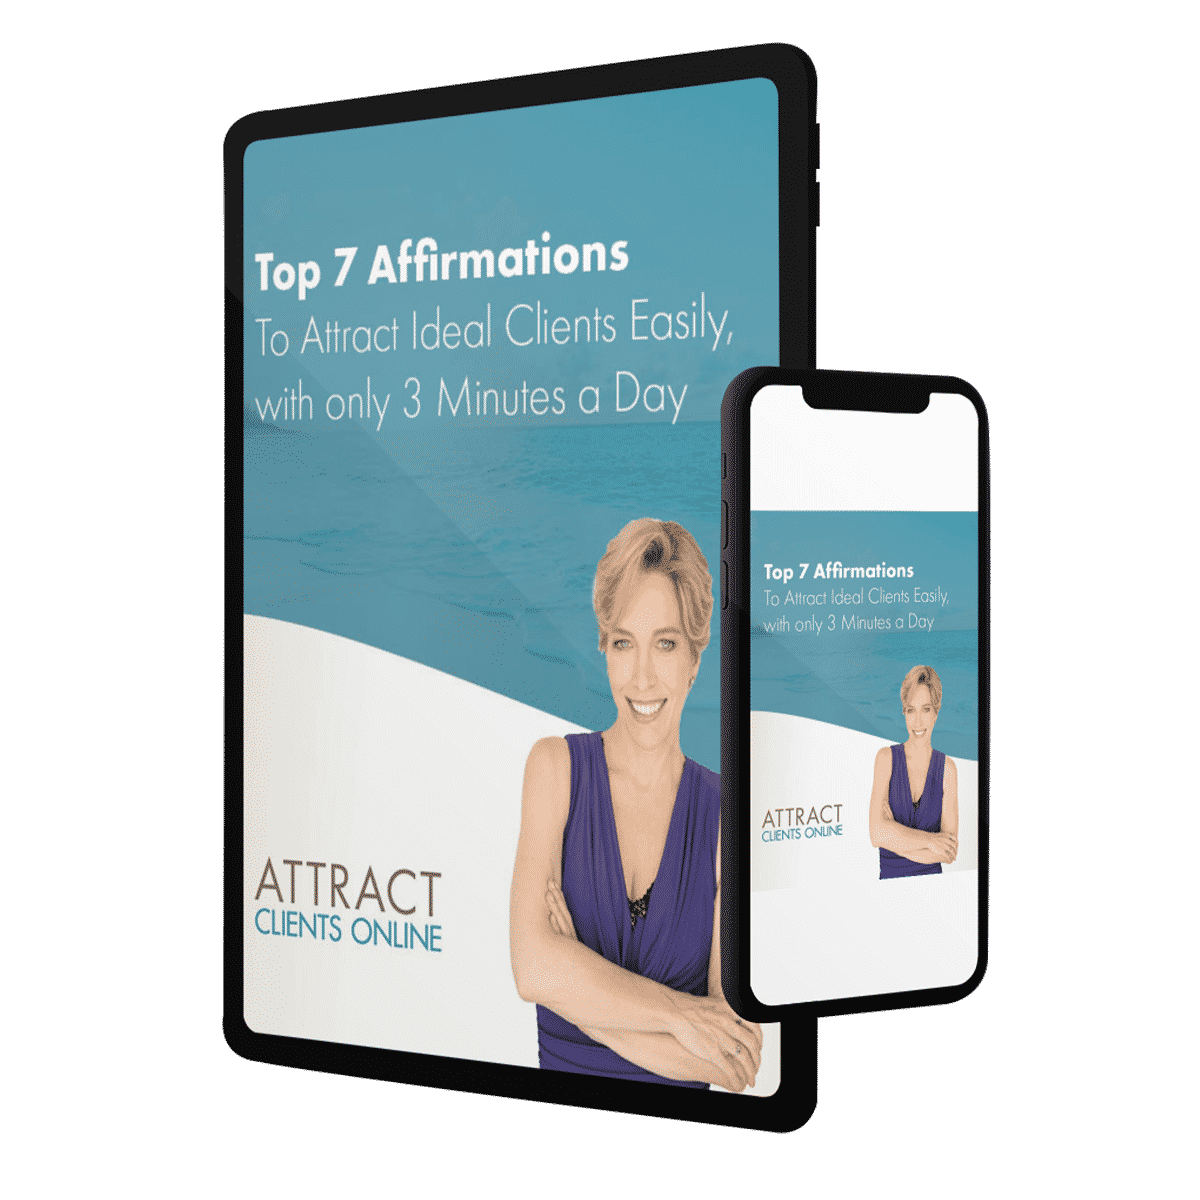 iPad Mock-up of Top 7 Affirmations You Can Use in Just 3 Minutes a Day to Attract Your Ideal Clients More Easily